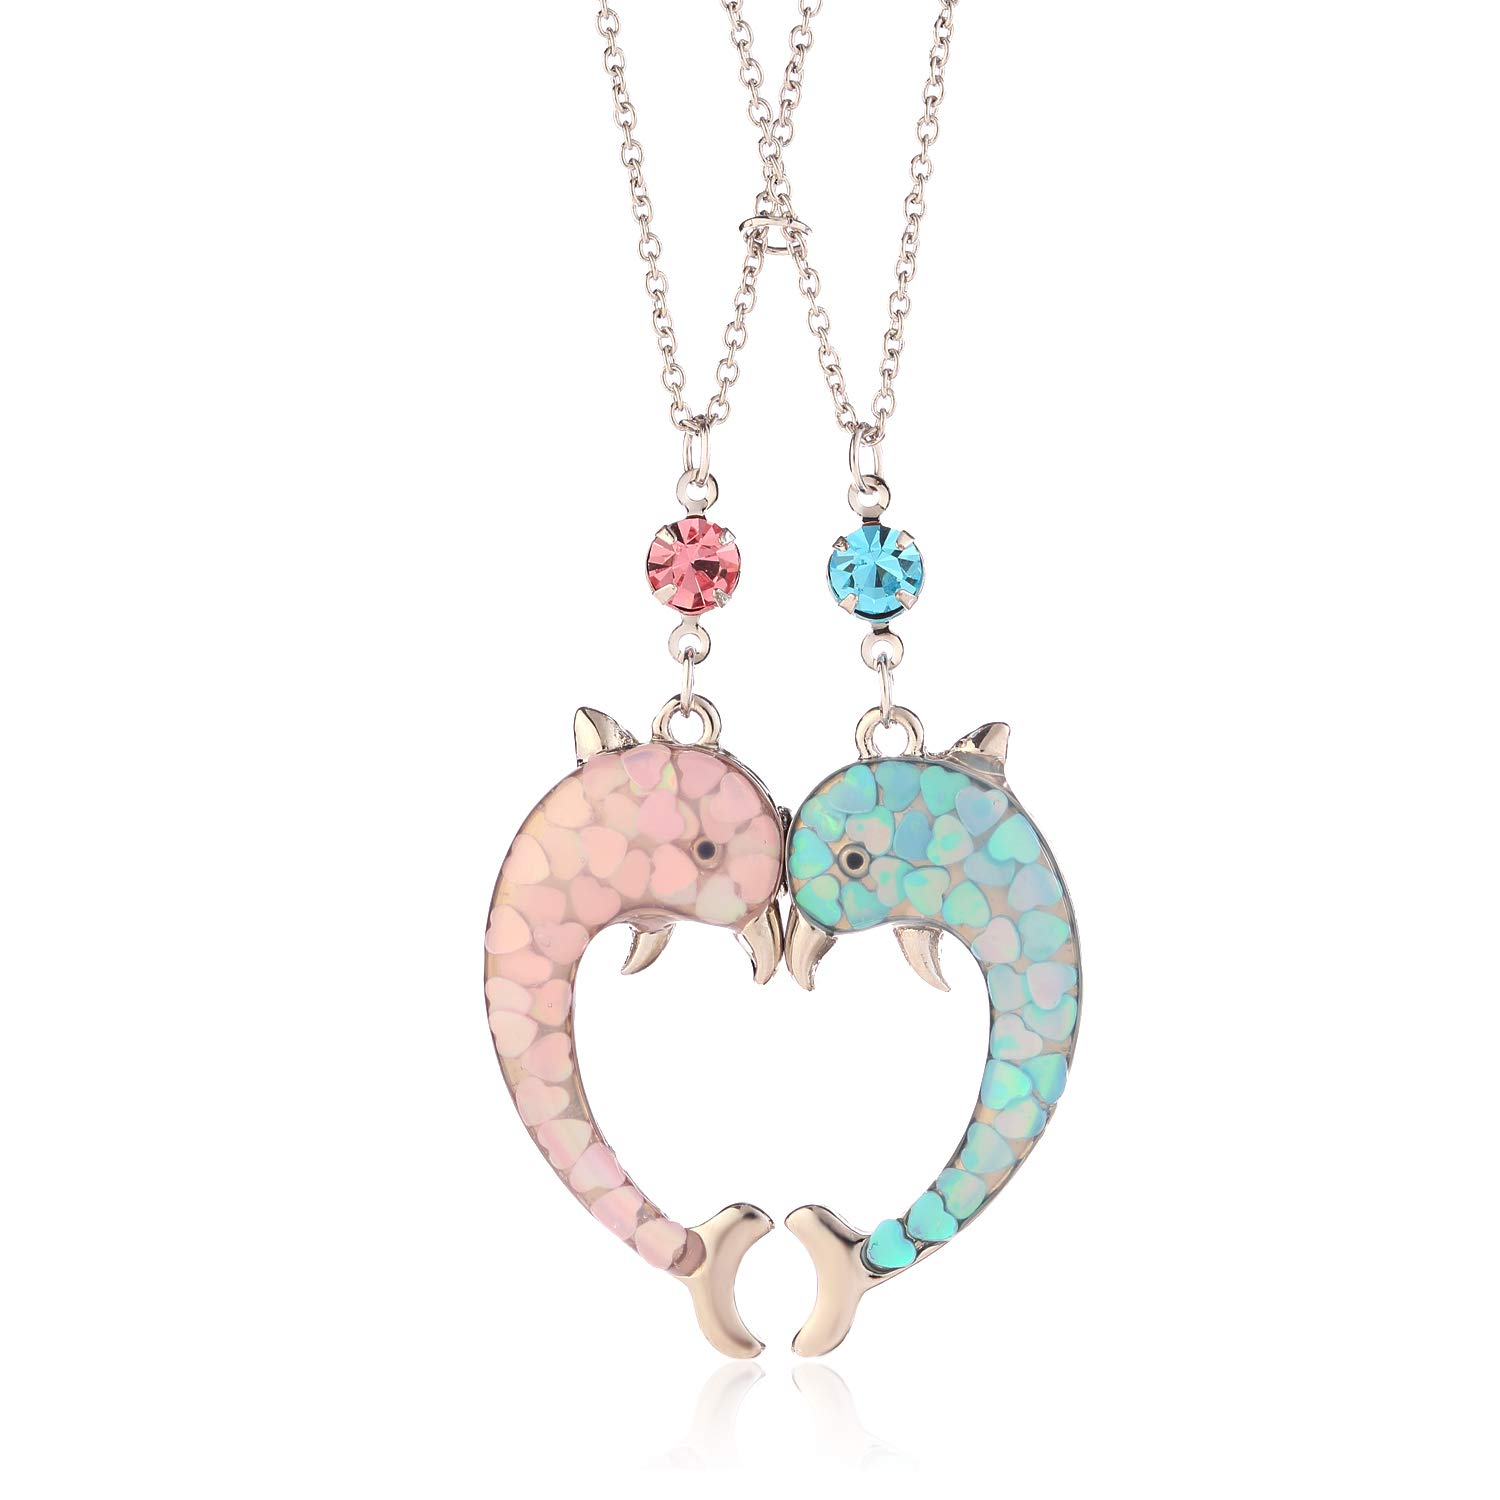 Lemonage Dolphin Necklace Fashion Magnet Function Heart Shape Locket Necklaces, Jewelry for Women Girls Sister Best Friend 2-Piece